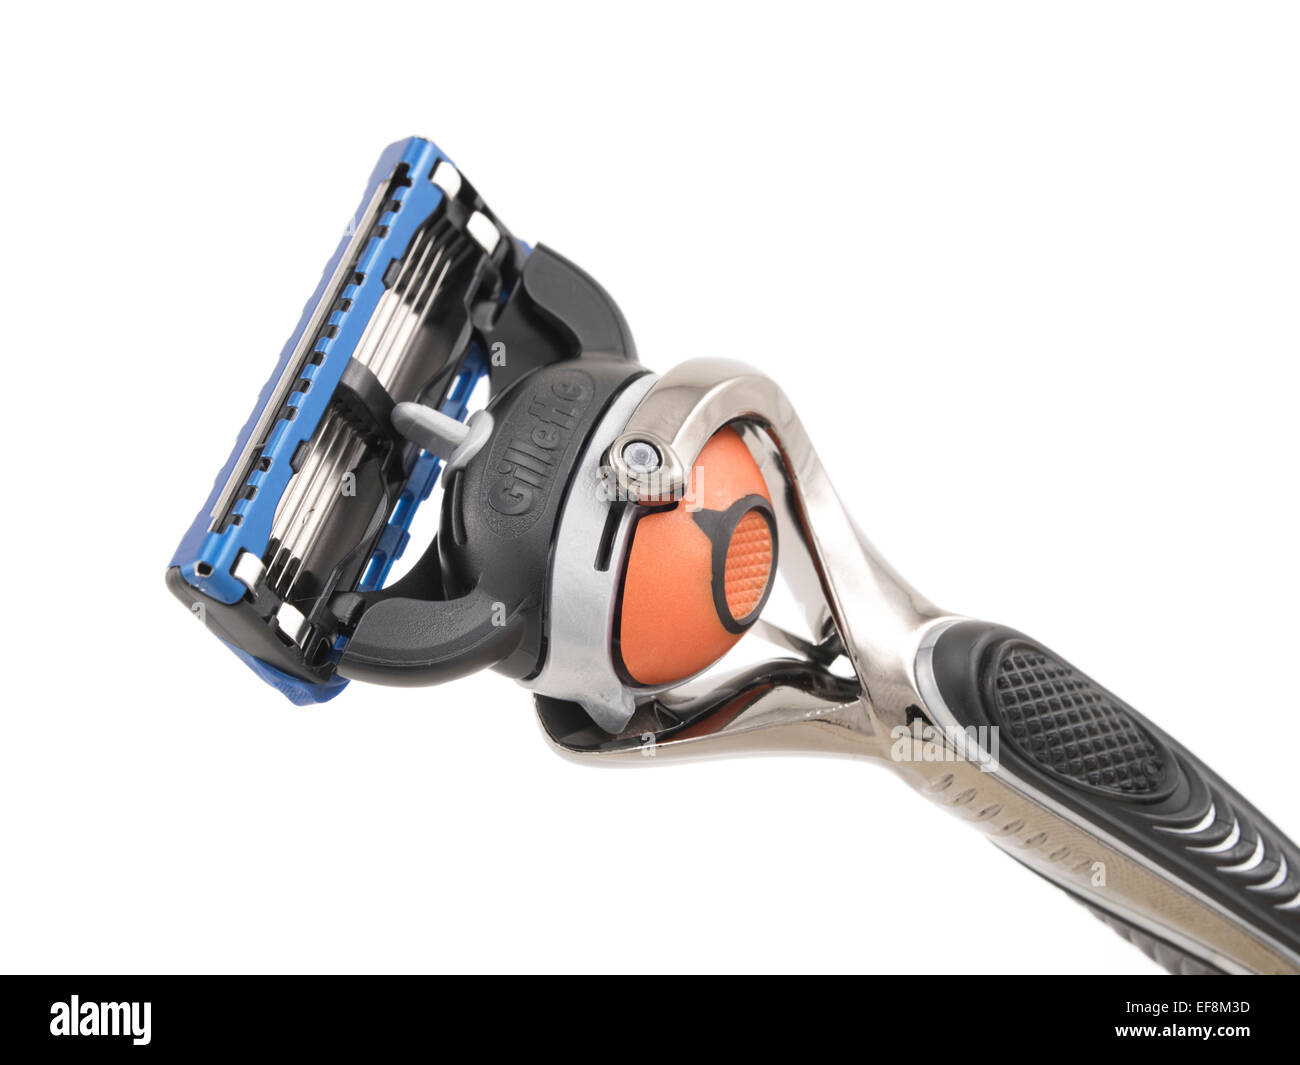 Gillette Fusion Proglide Disposable Razor with Flexball for shaving / male grooming - Stock Image